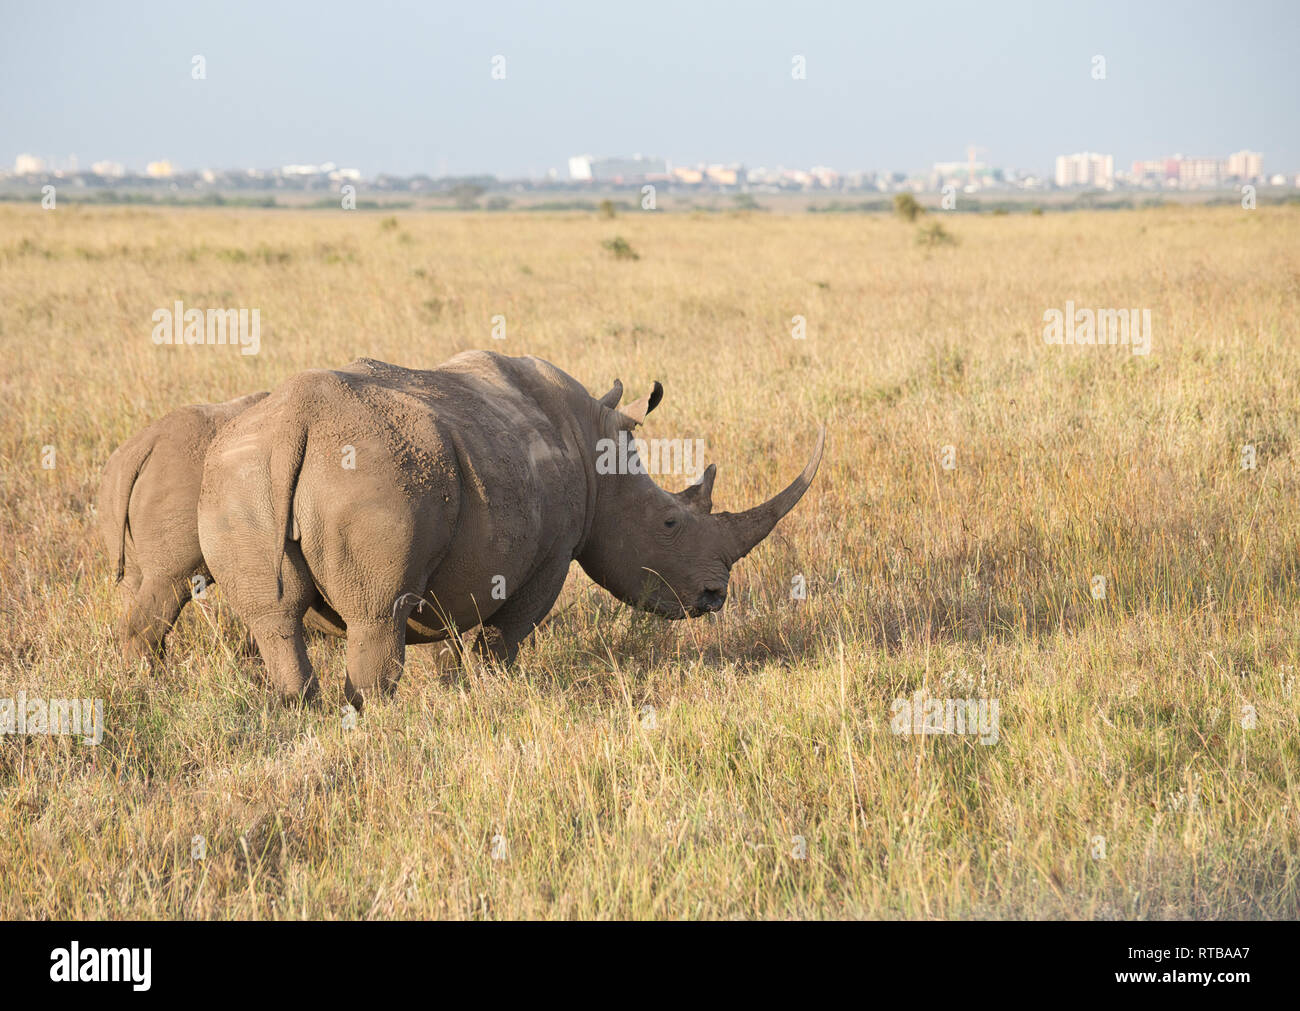 White or grass rhinoceros (Ceratotherium simum), mother and calf with Nairobi city centre in the background. Stock Photo